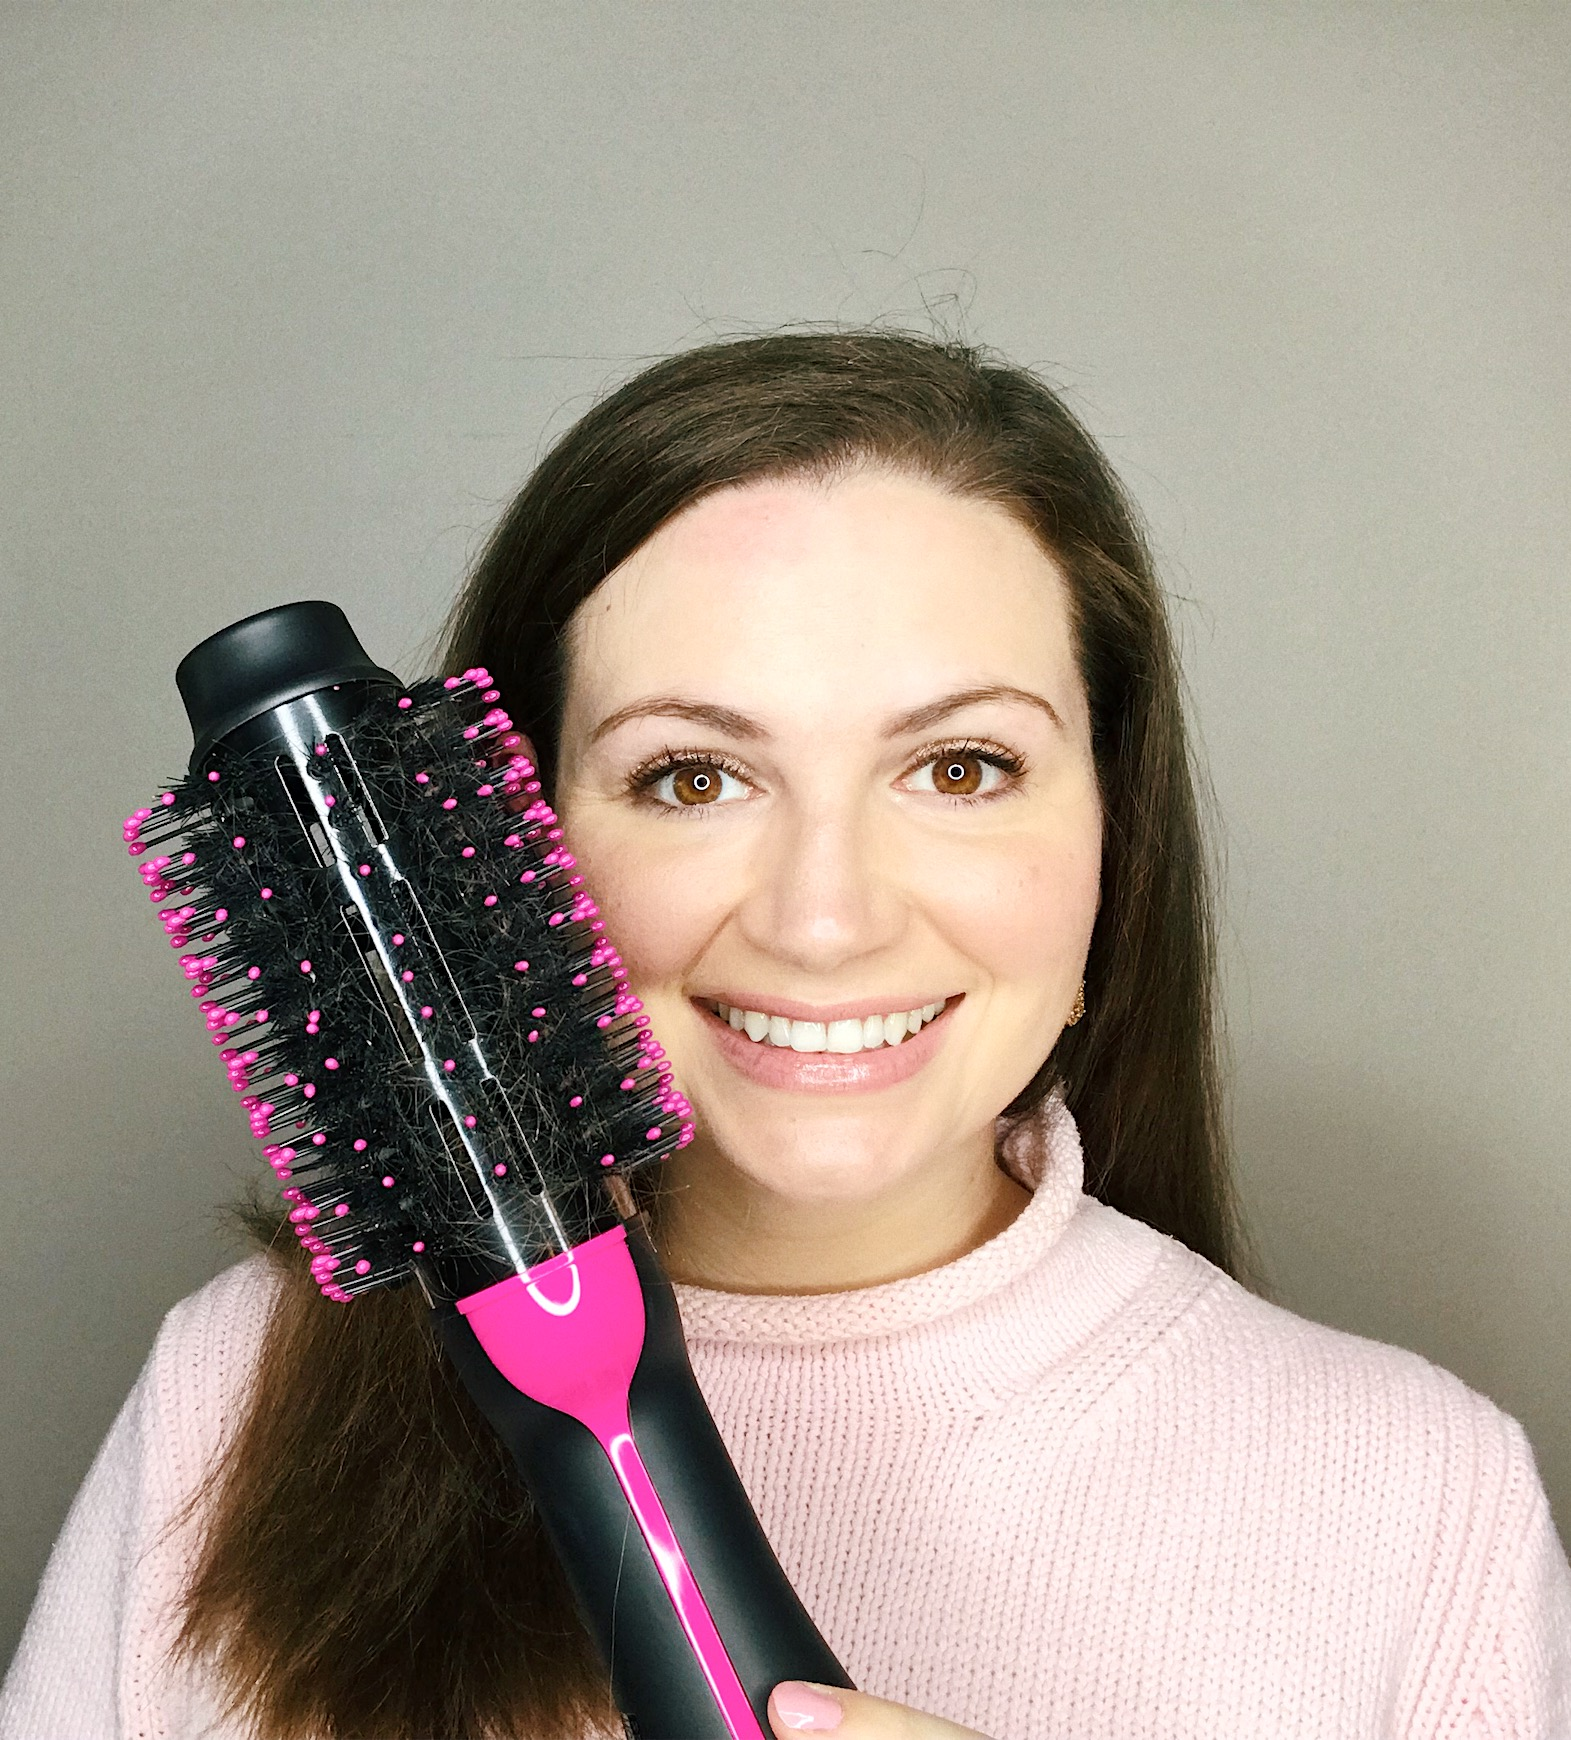 Revlon One Step Volumizer Hair Dryer